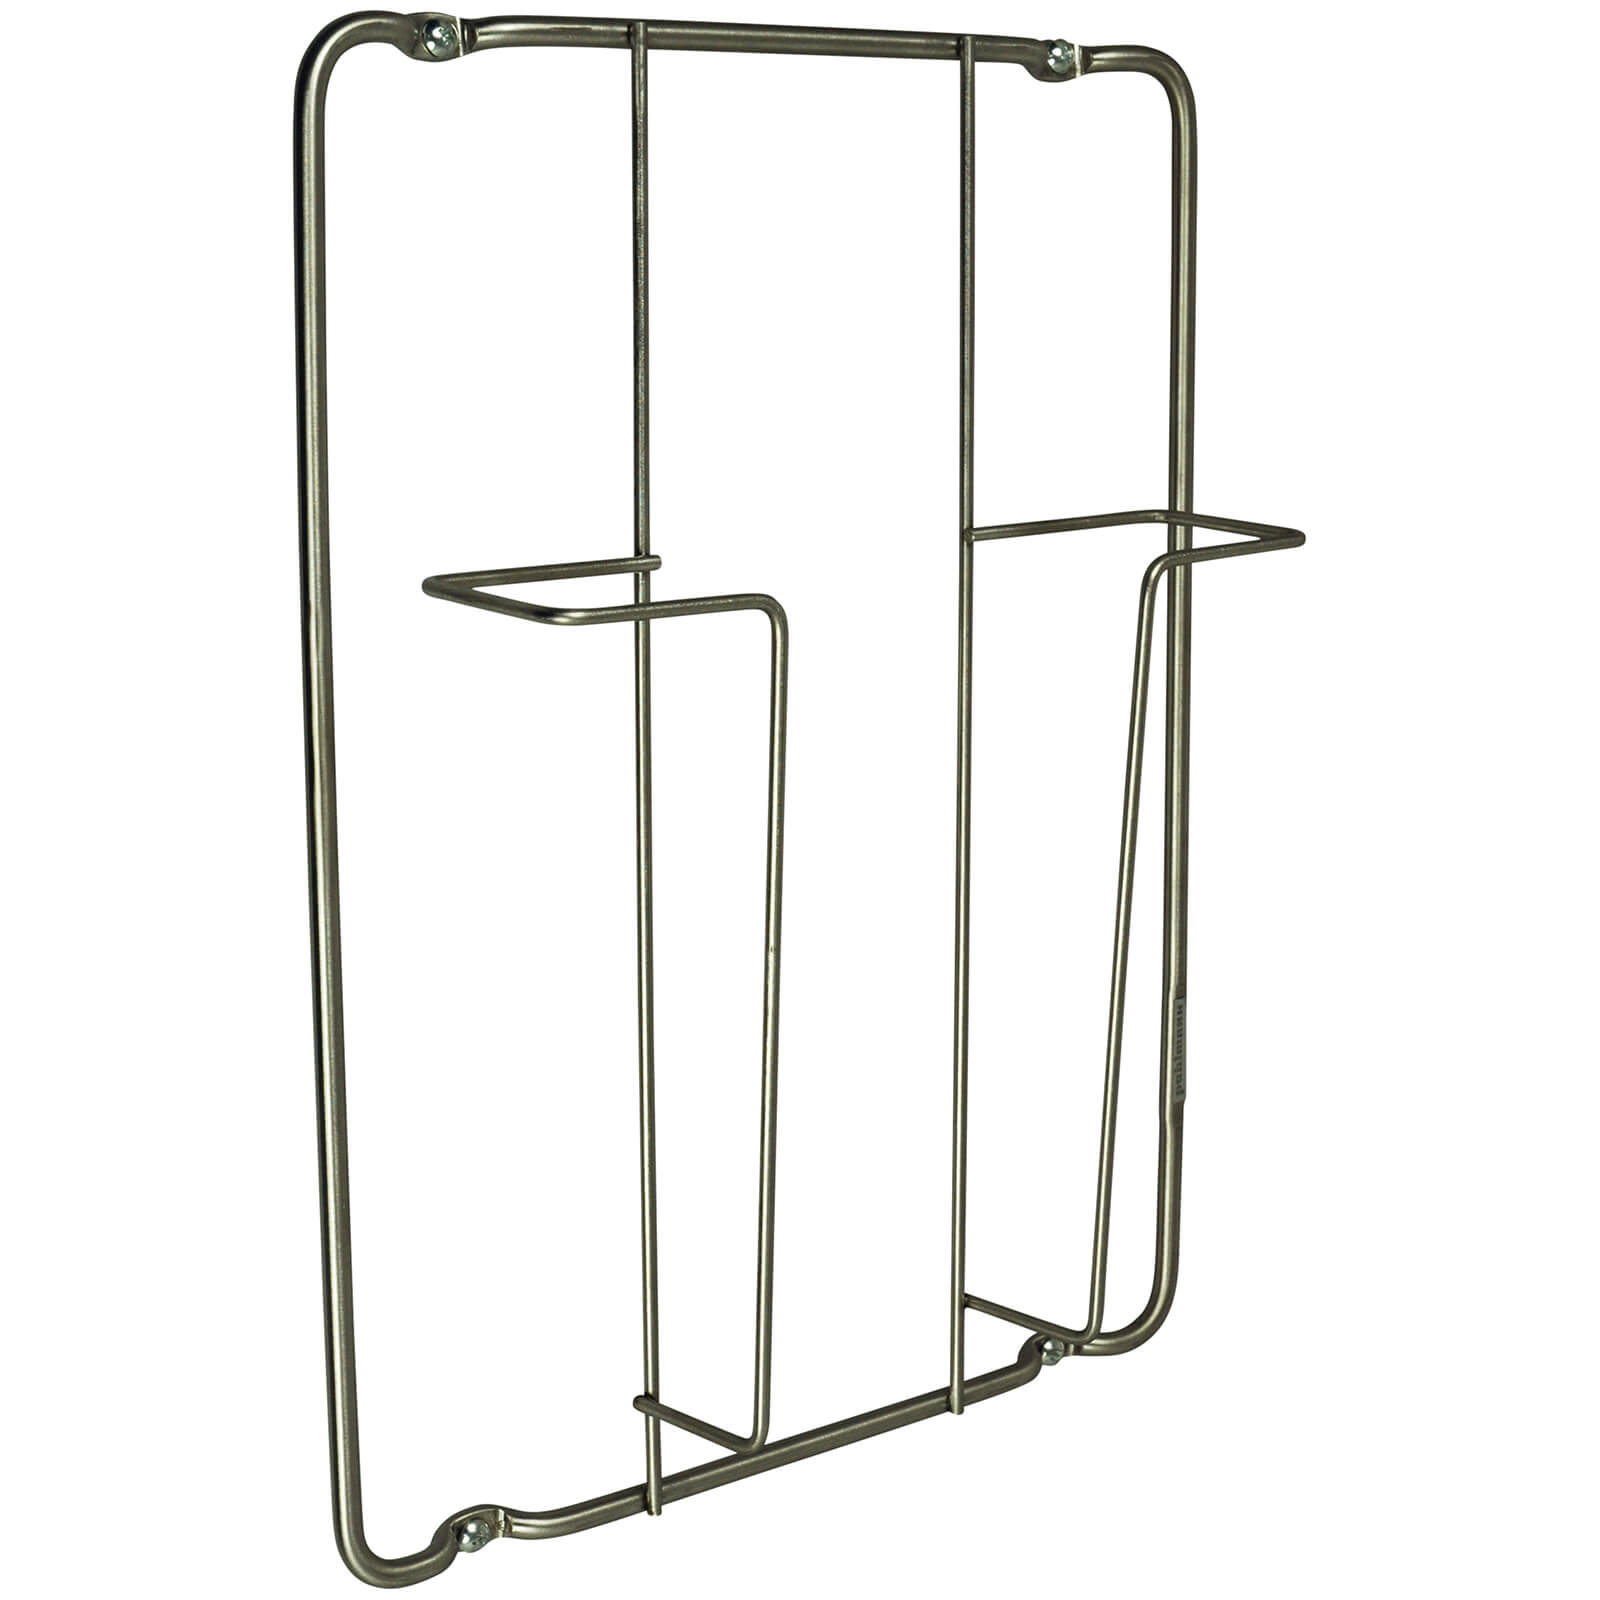 Capventure Frame-1 Magazine Wall Rack - Stainless Steel